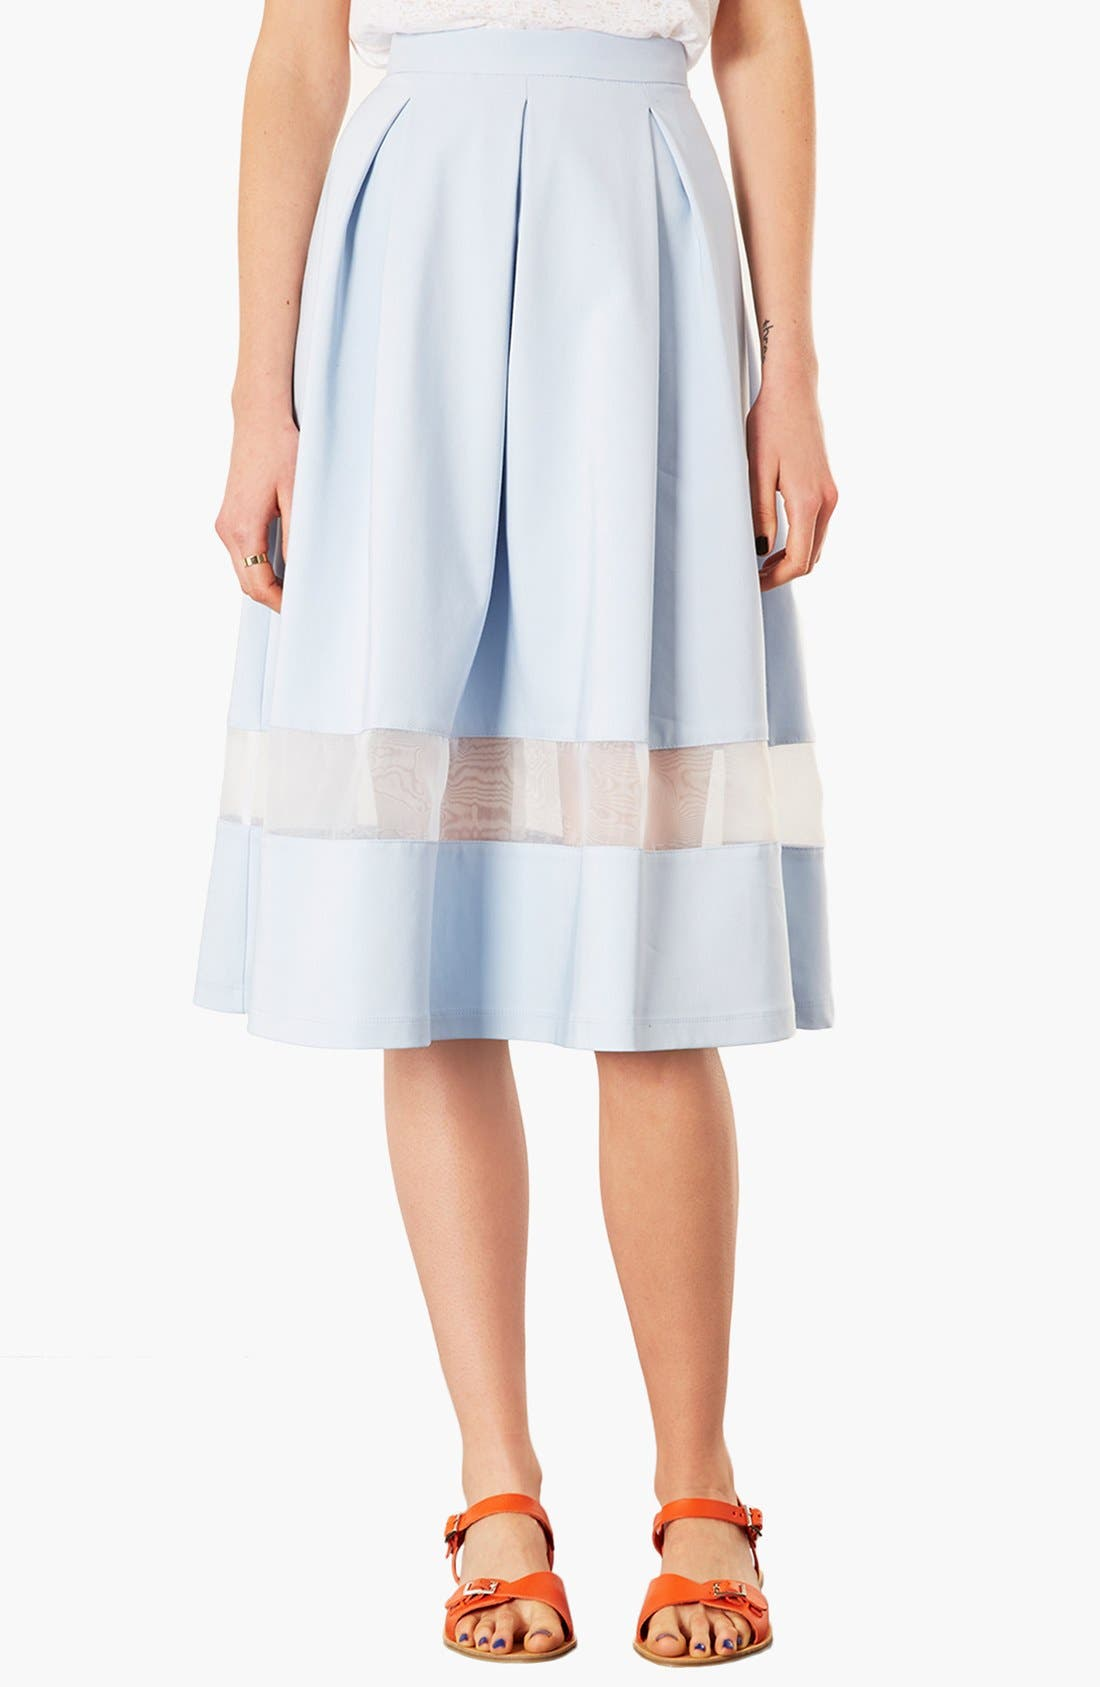 TOPSHOP, Organza Stripe Skirt, Main thumbnail 1, color, 450